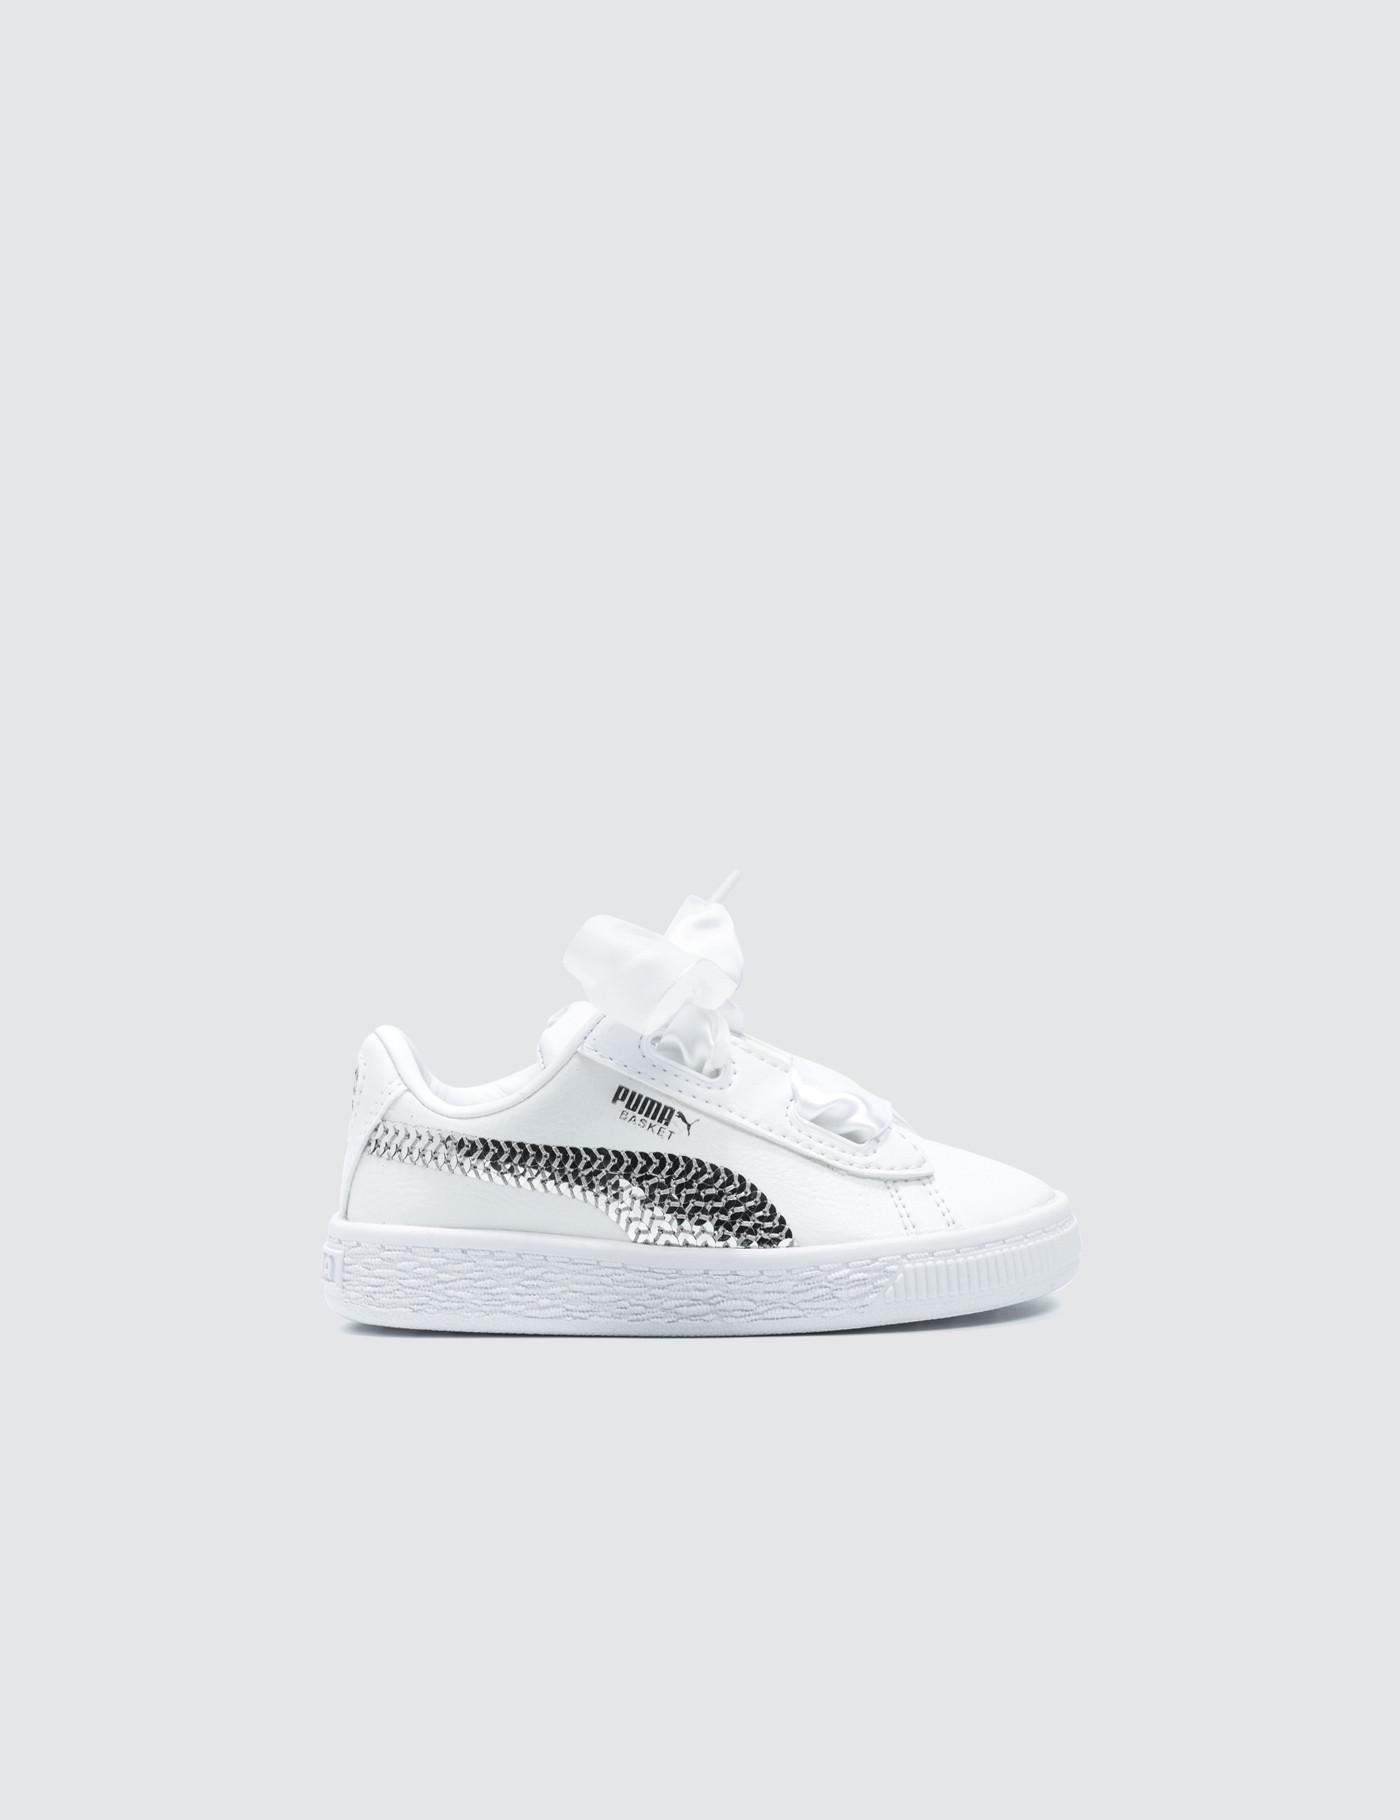 b144ce9c16e Lyst - PUMA Basket Heart Bling Infant in White - Save 10%